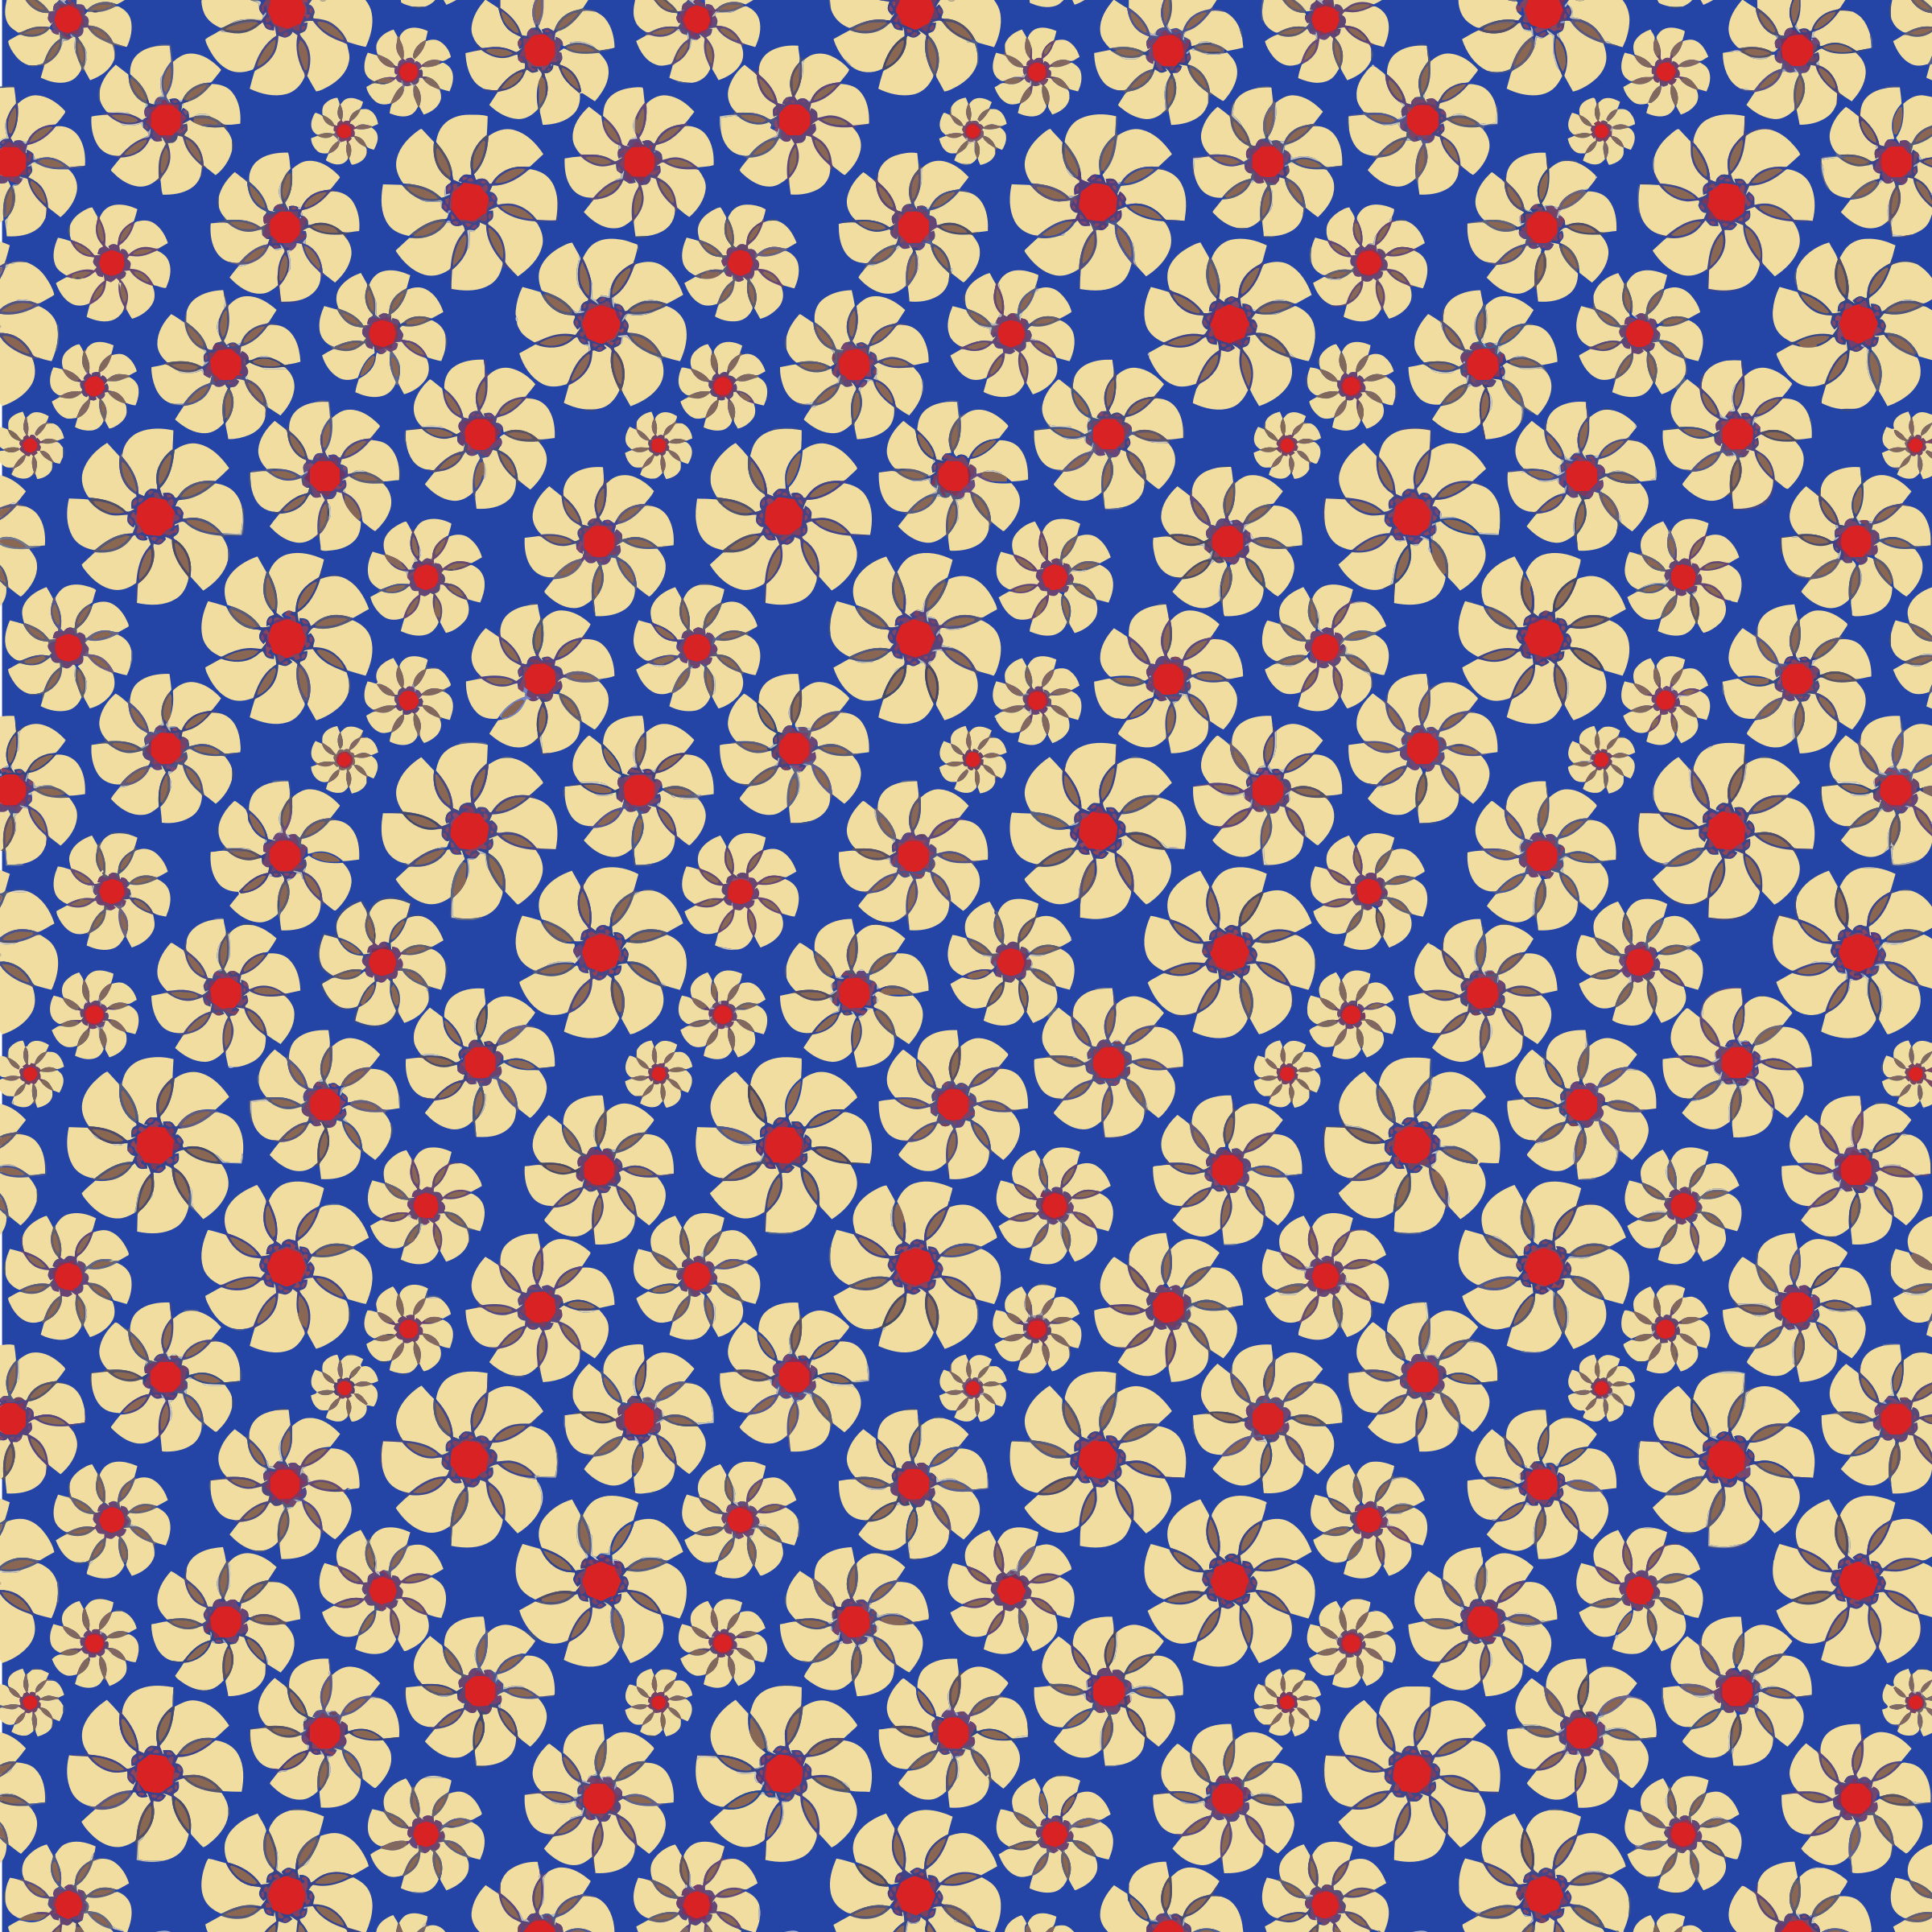 Seamless Floral Pattern Tile 2 by GDJ